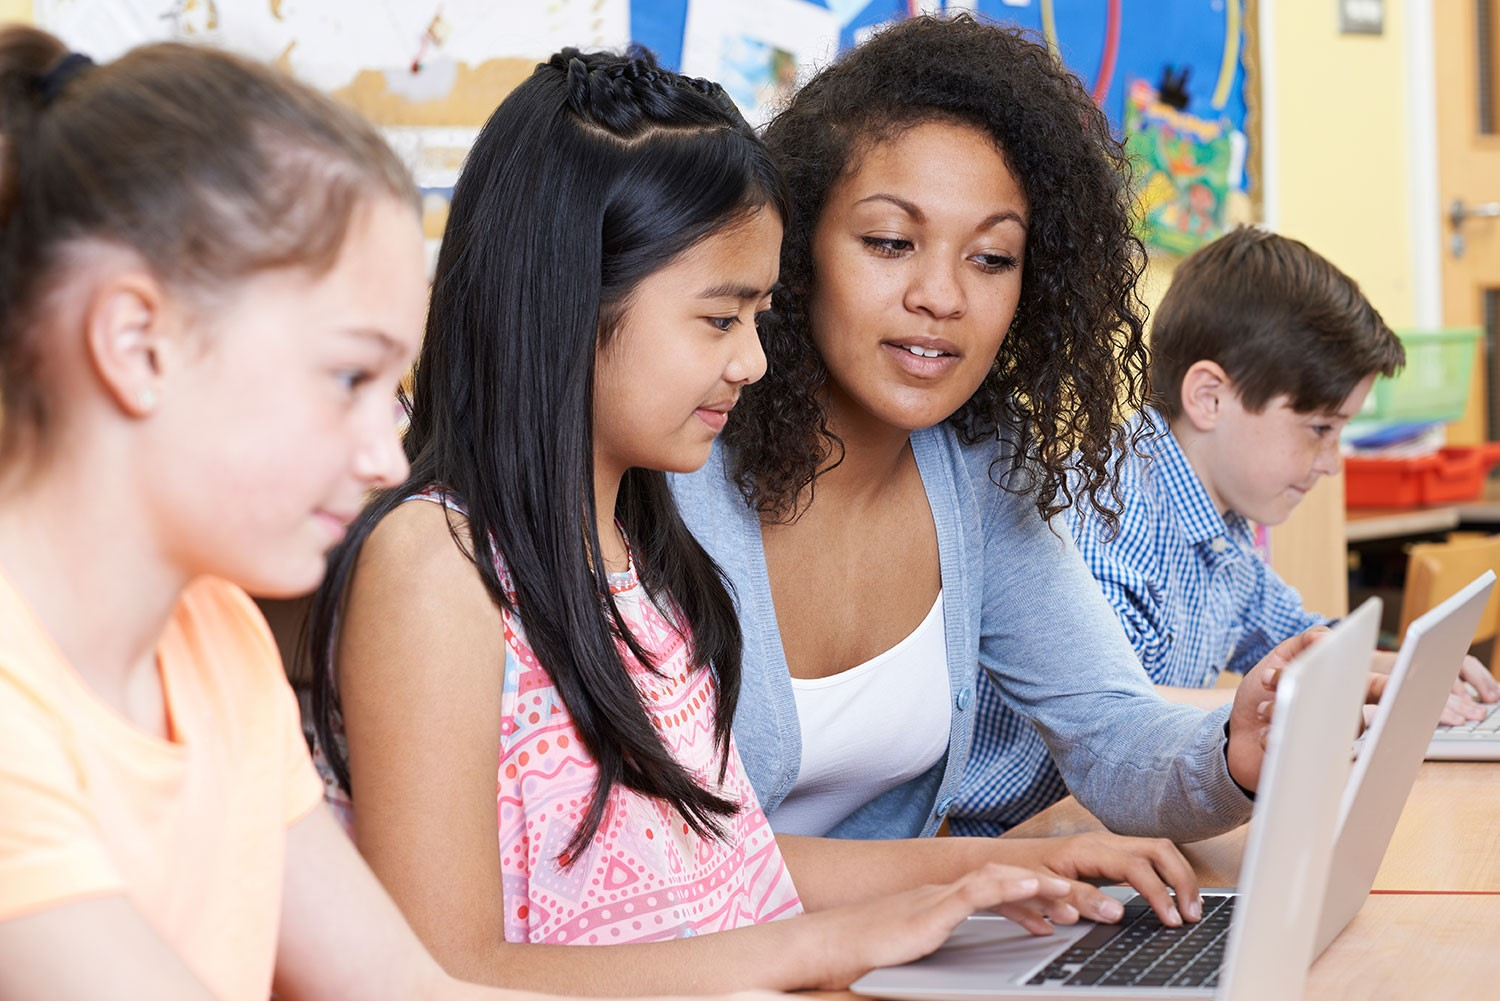 Coding for Kids: A Guide to Choosing a Coding Camp (sponsored)